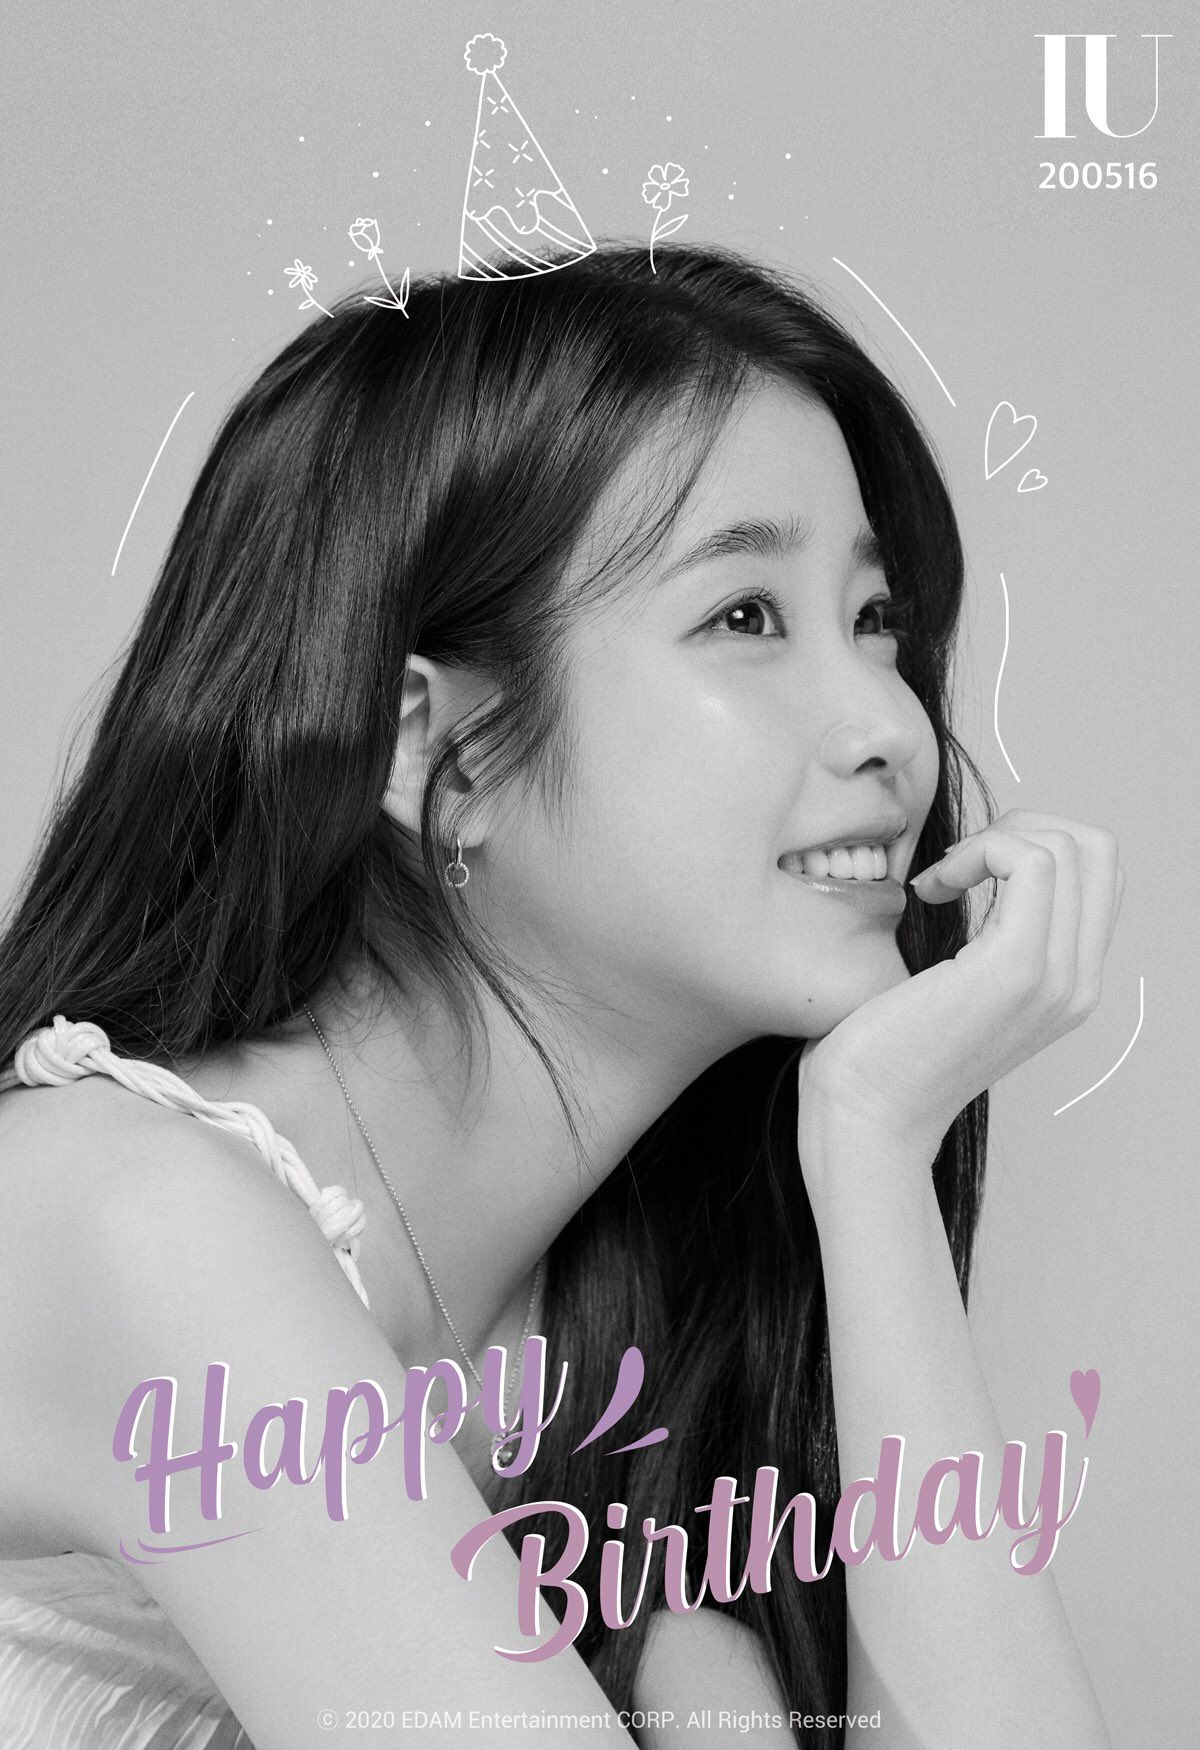 Pin by 𝐉𝐢𝐚𝐡_ on IU in 2020 Happy birthday my love, Happy